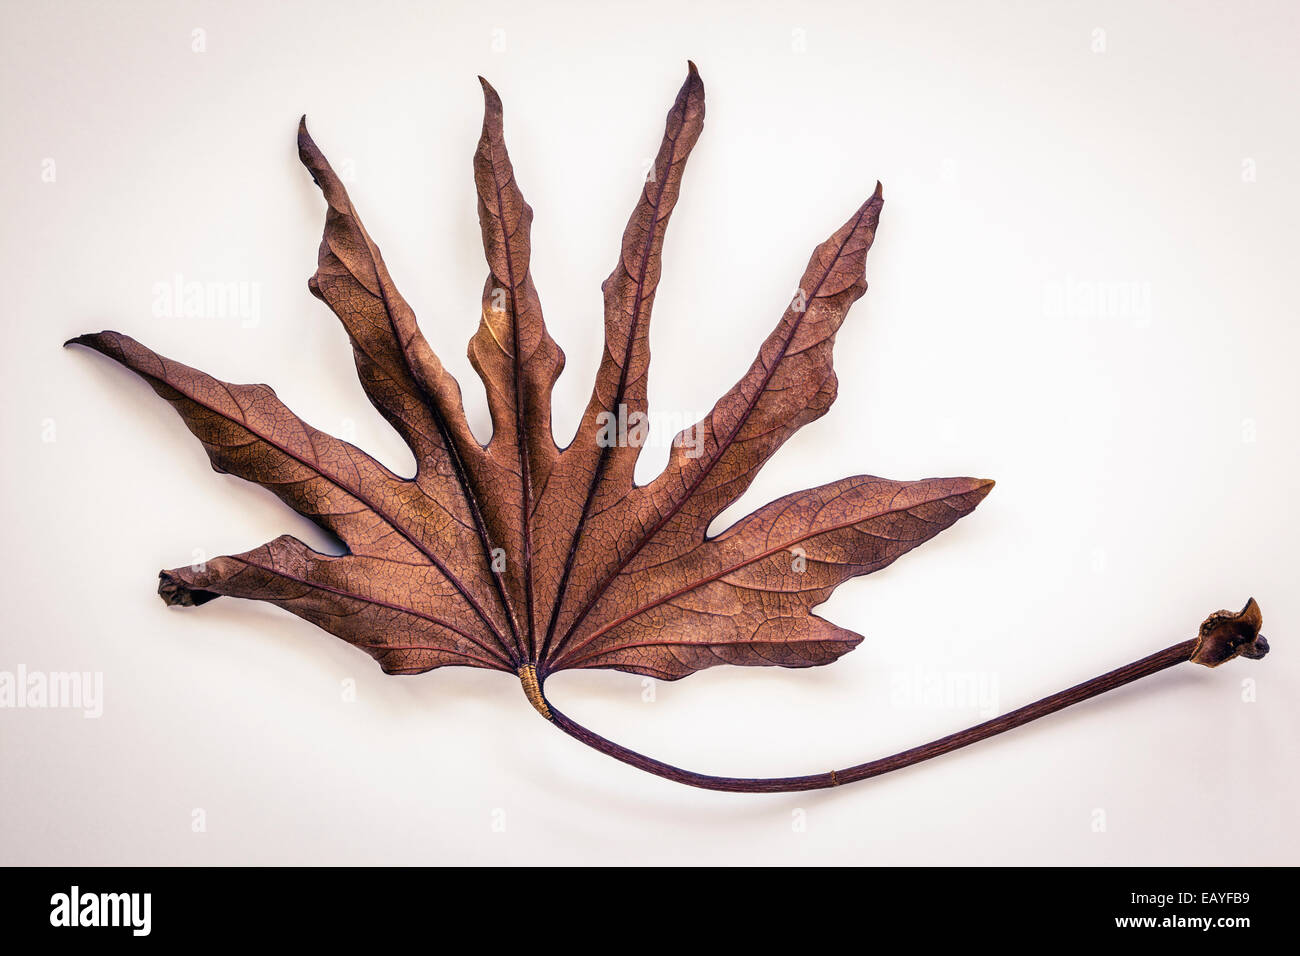 dry leaf of a Fatsia japonica - Stock Image